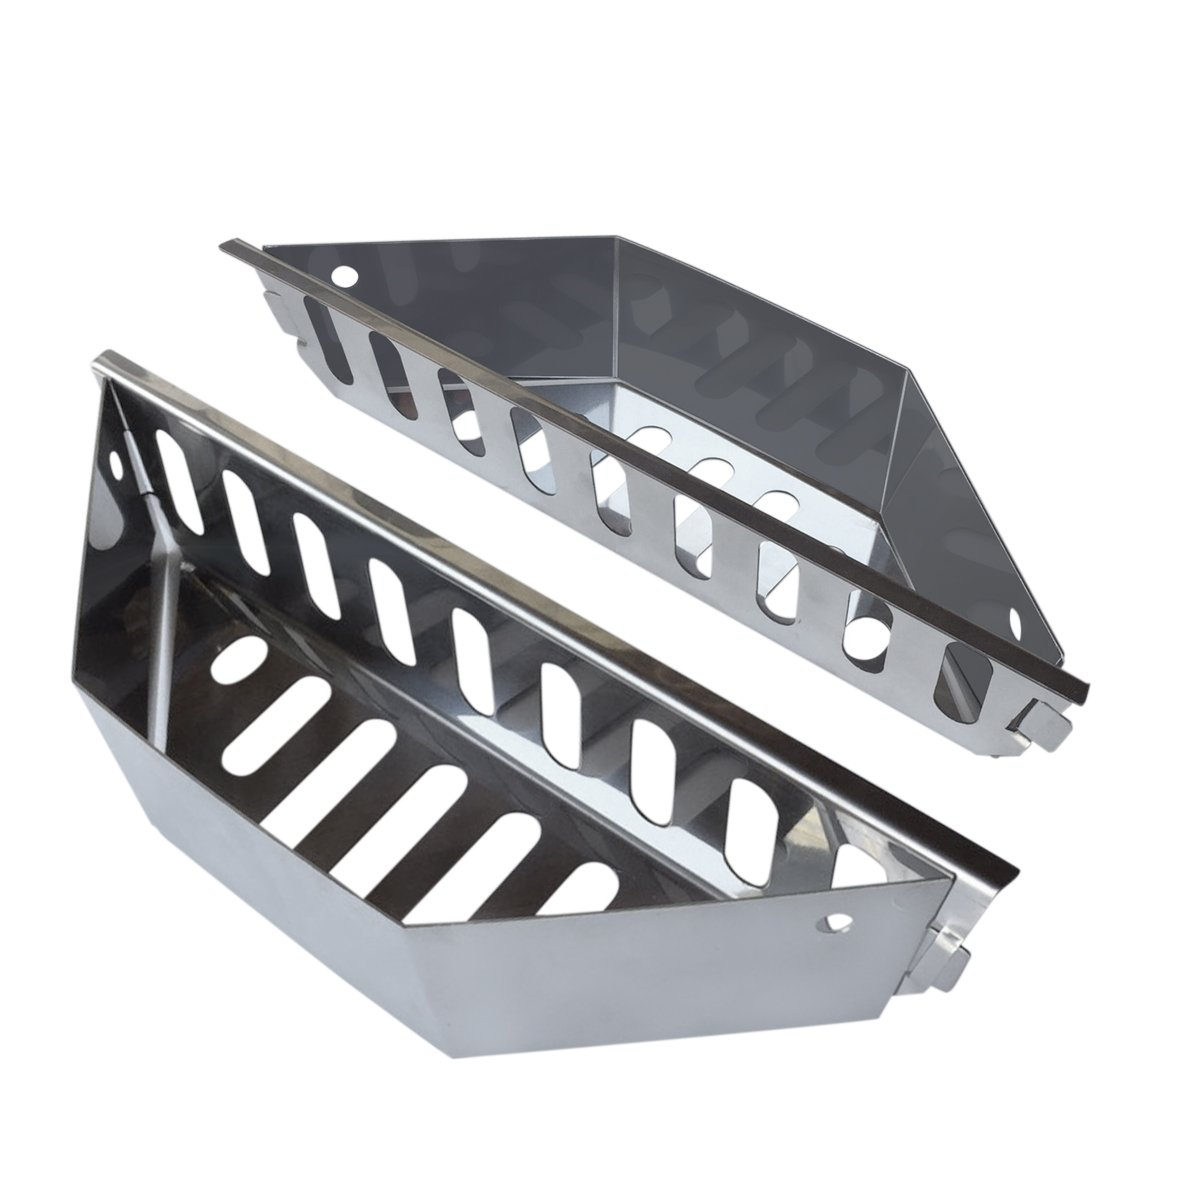 New Larger Design- Stainless Steel Charcoal Basket- BBQ Grilling Accessories for Grills and 22'' Kettles- Heavy Duty Char-Basket for Briquette, Wood Chips- Charcoal Grill Accessories (Set of 2)